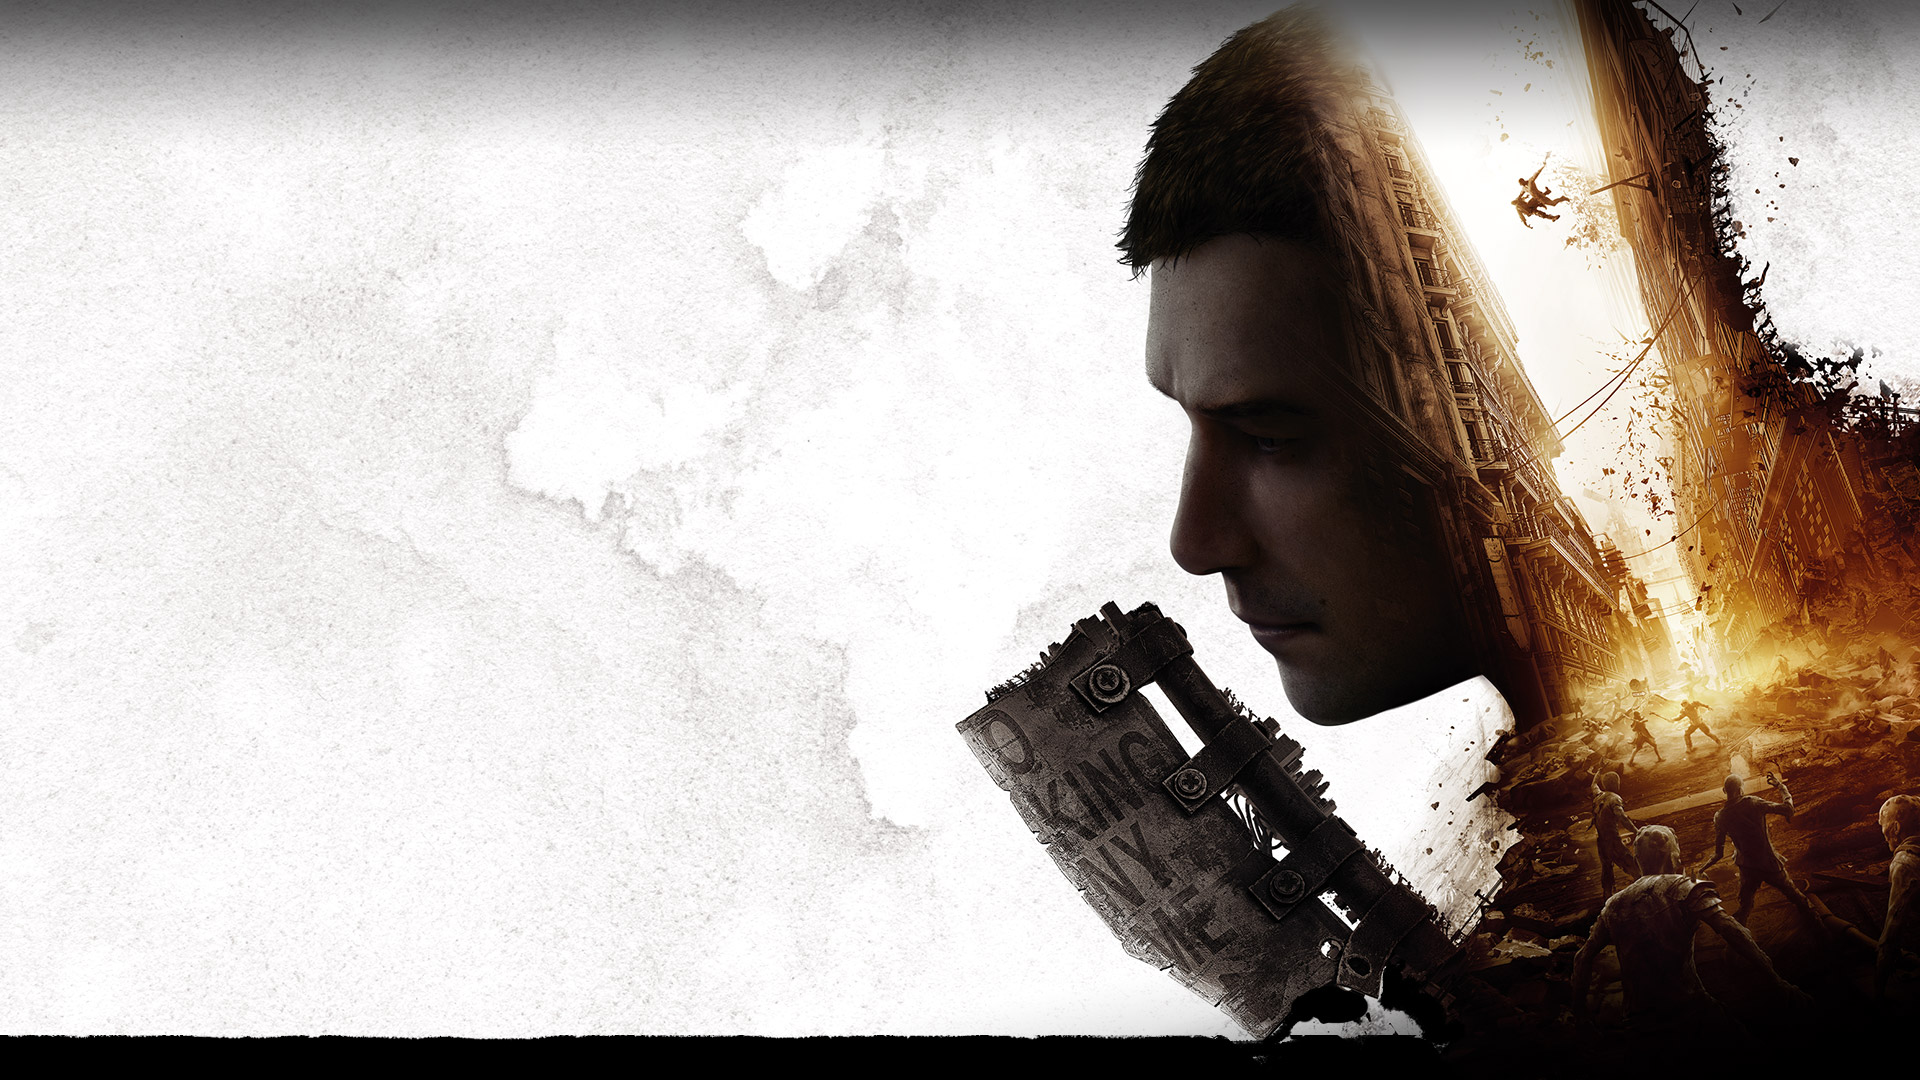 Dying Light 2, tiny scenes of people fighting in a city and a side view of a man with a weapon.